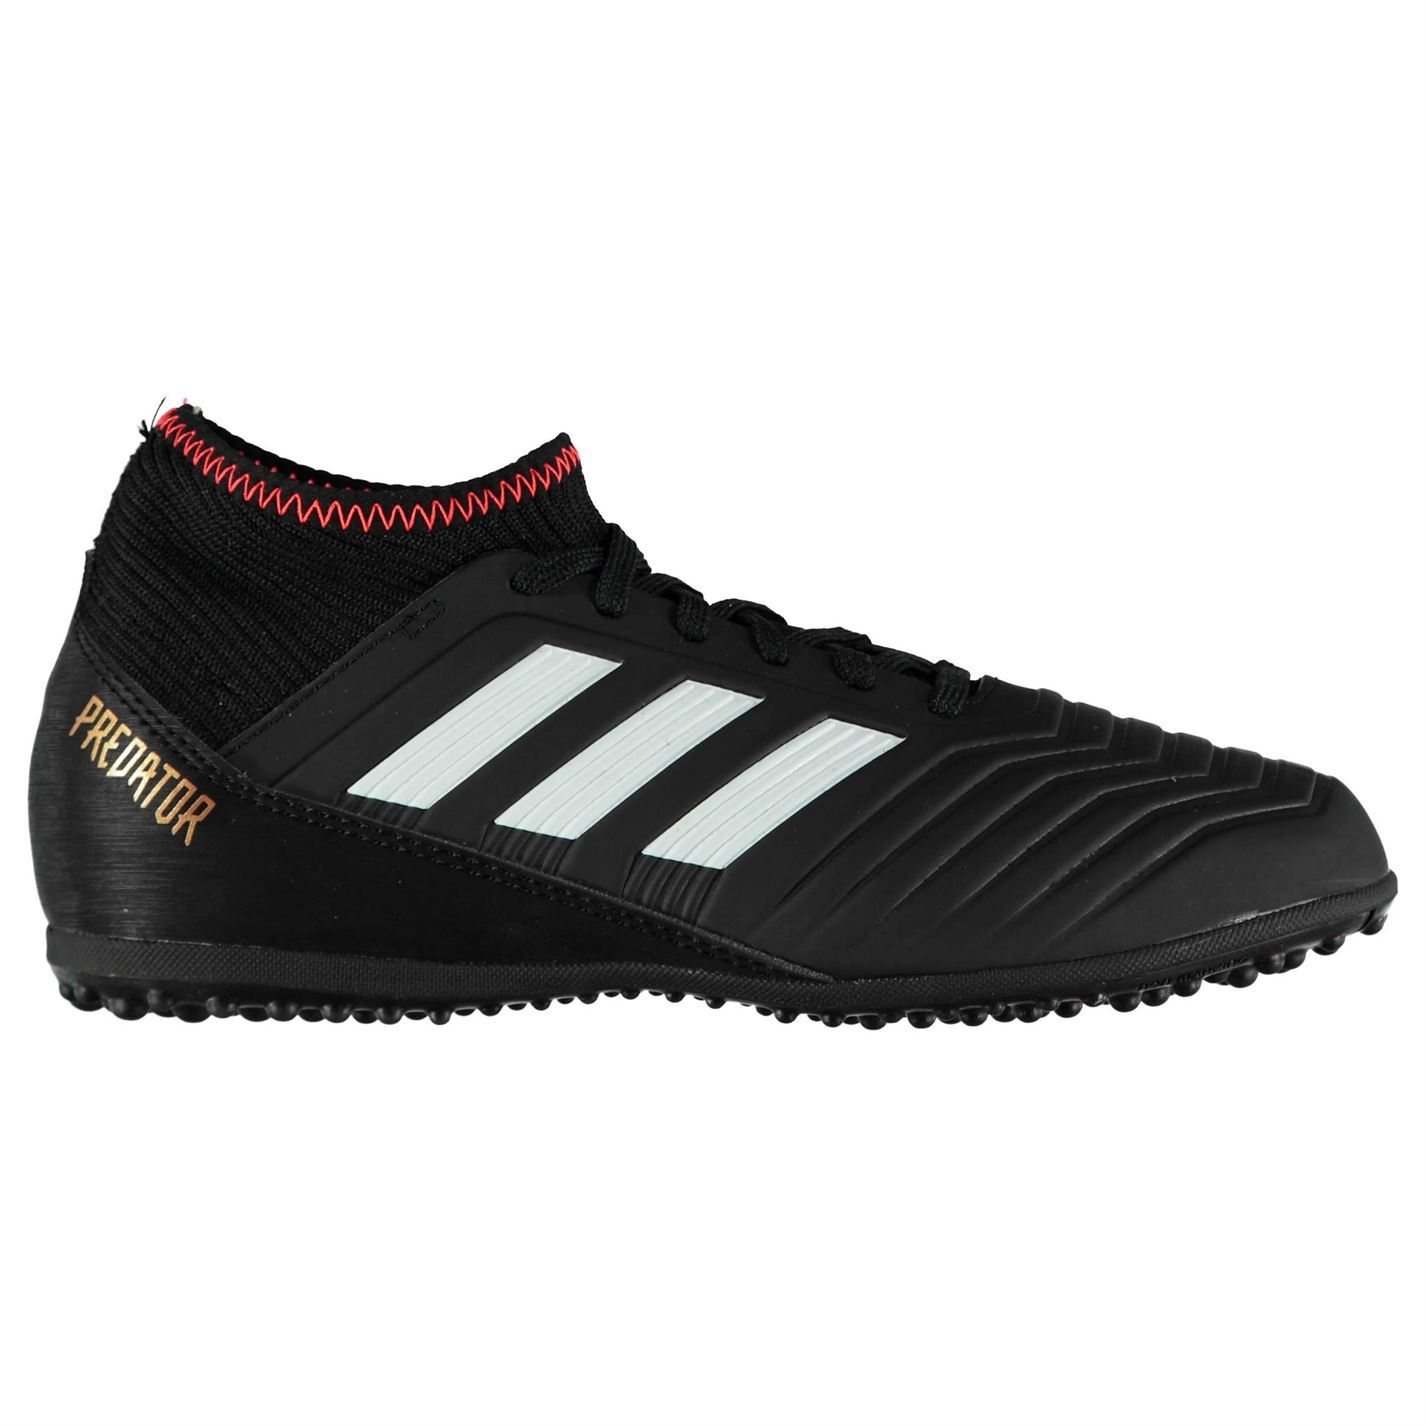 75d6364b3993 ... black white solar red e15a8 61e48  new zealand adidas kids predator  tango 18.3 junior astro turf trainers football boots lace 06f1d 85eef